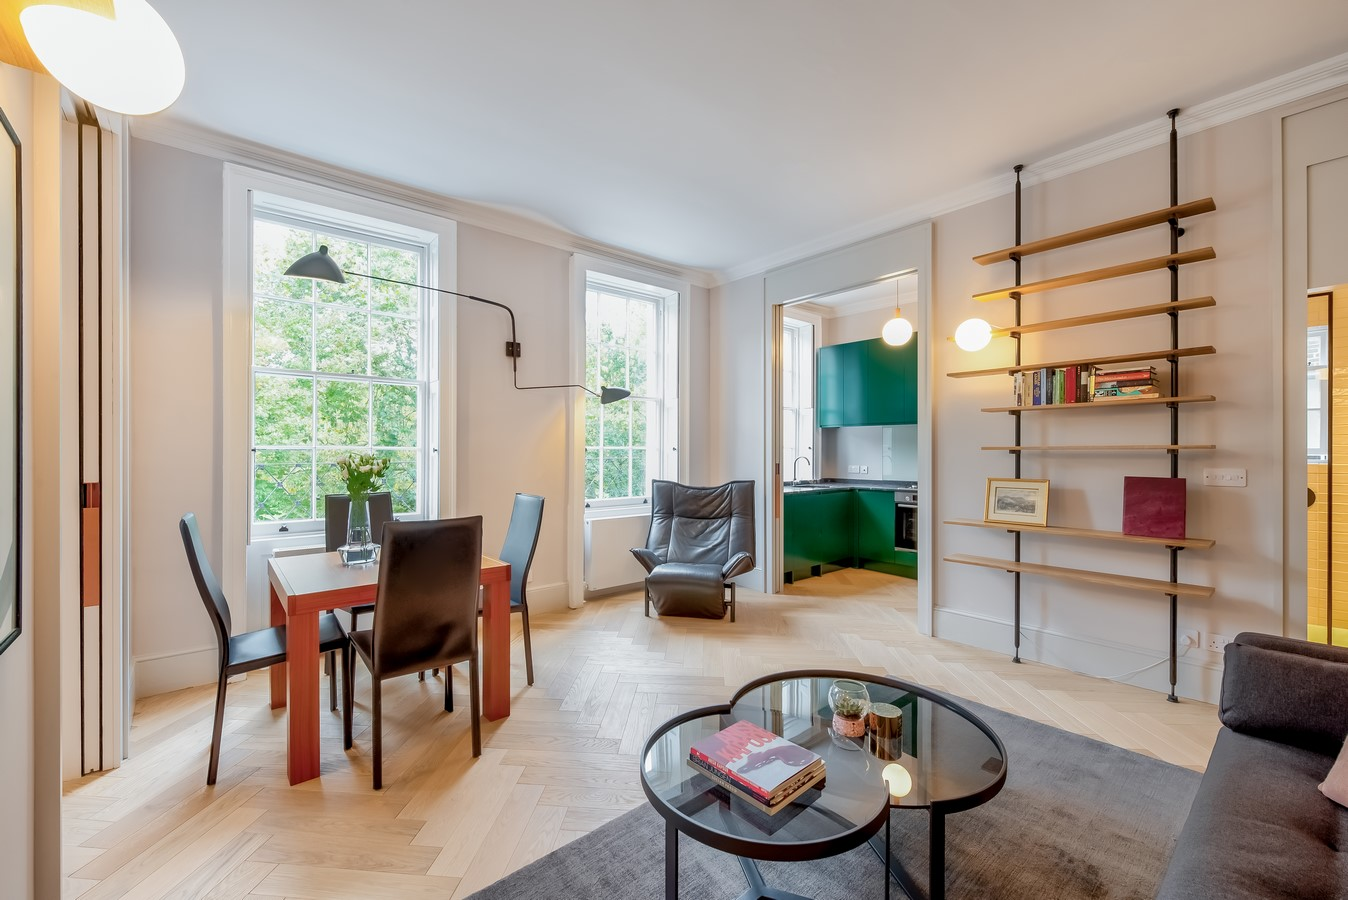 5077 Highbury Apartment by Patalab Architecture: Sheet 2